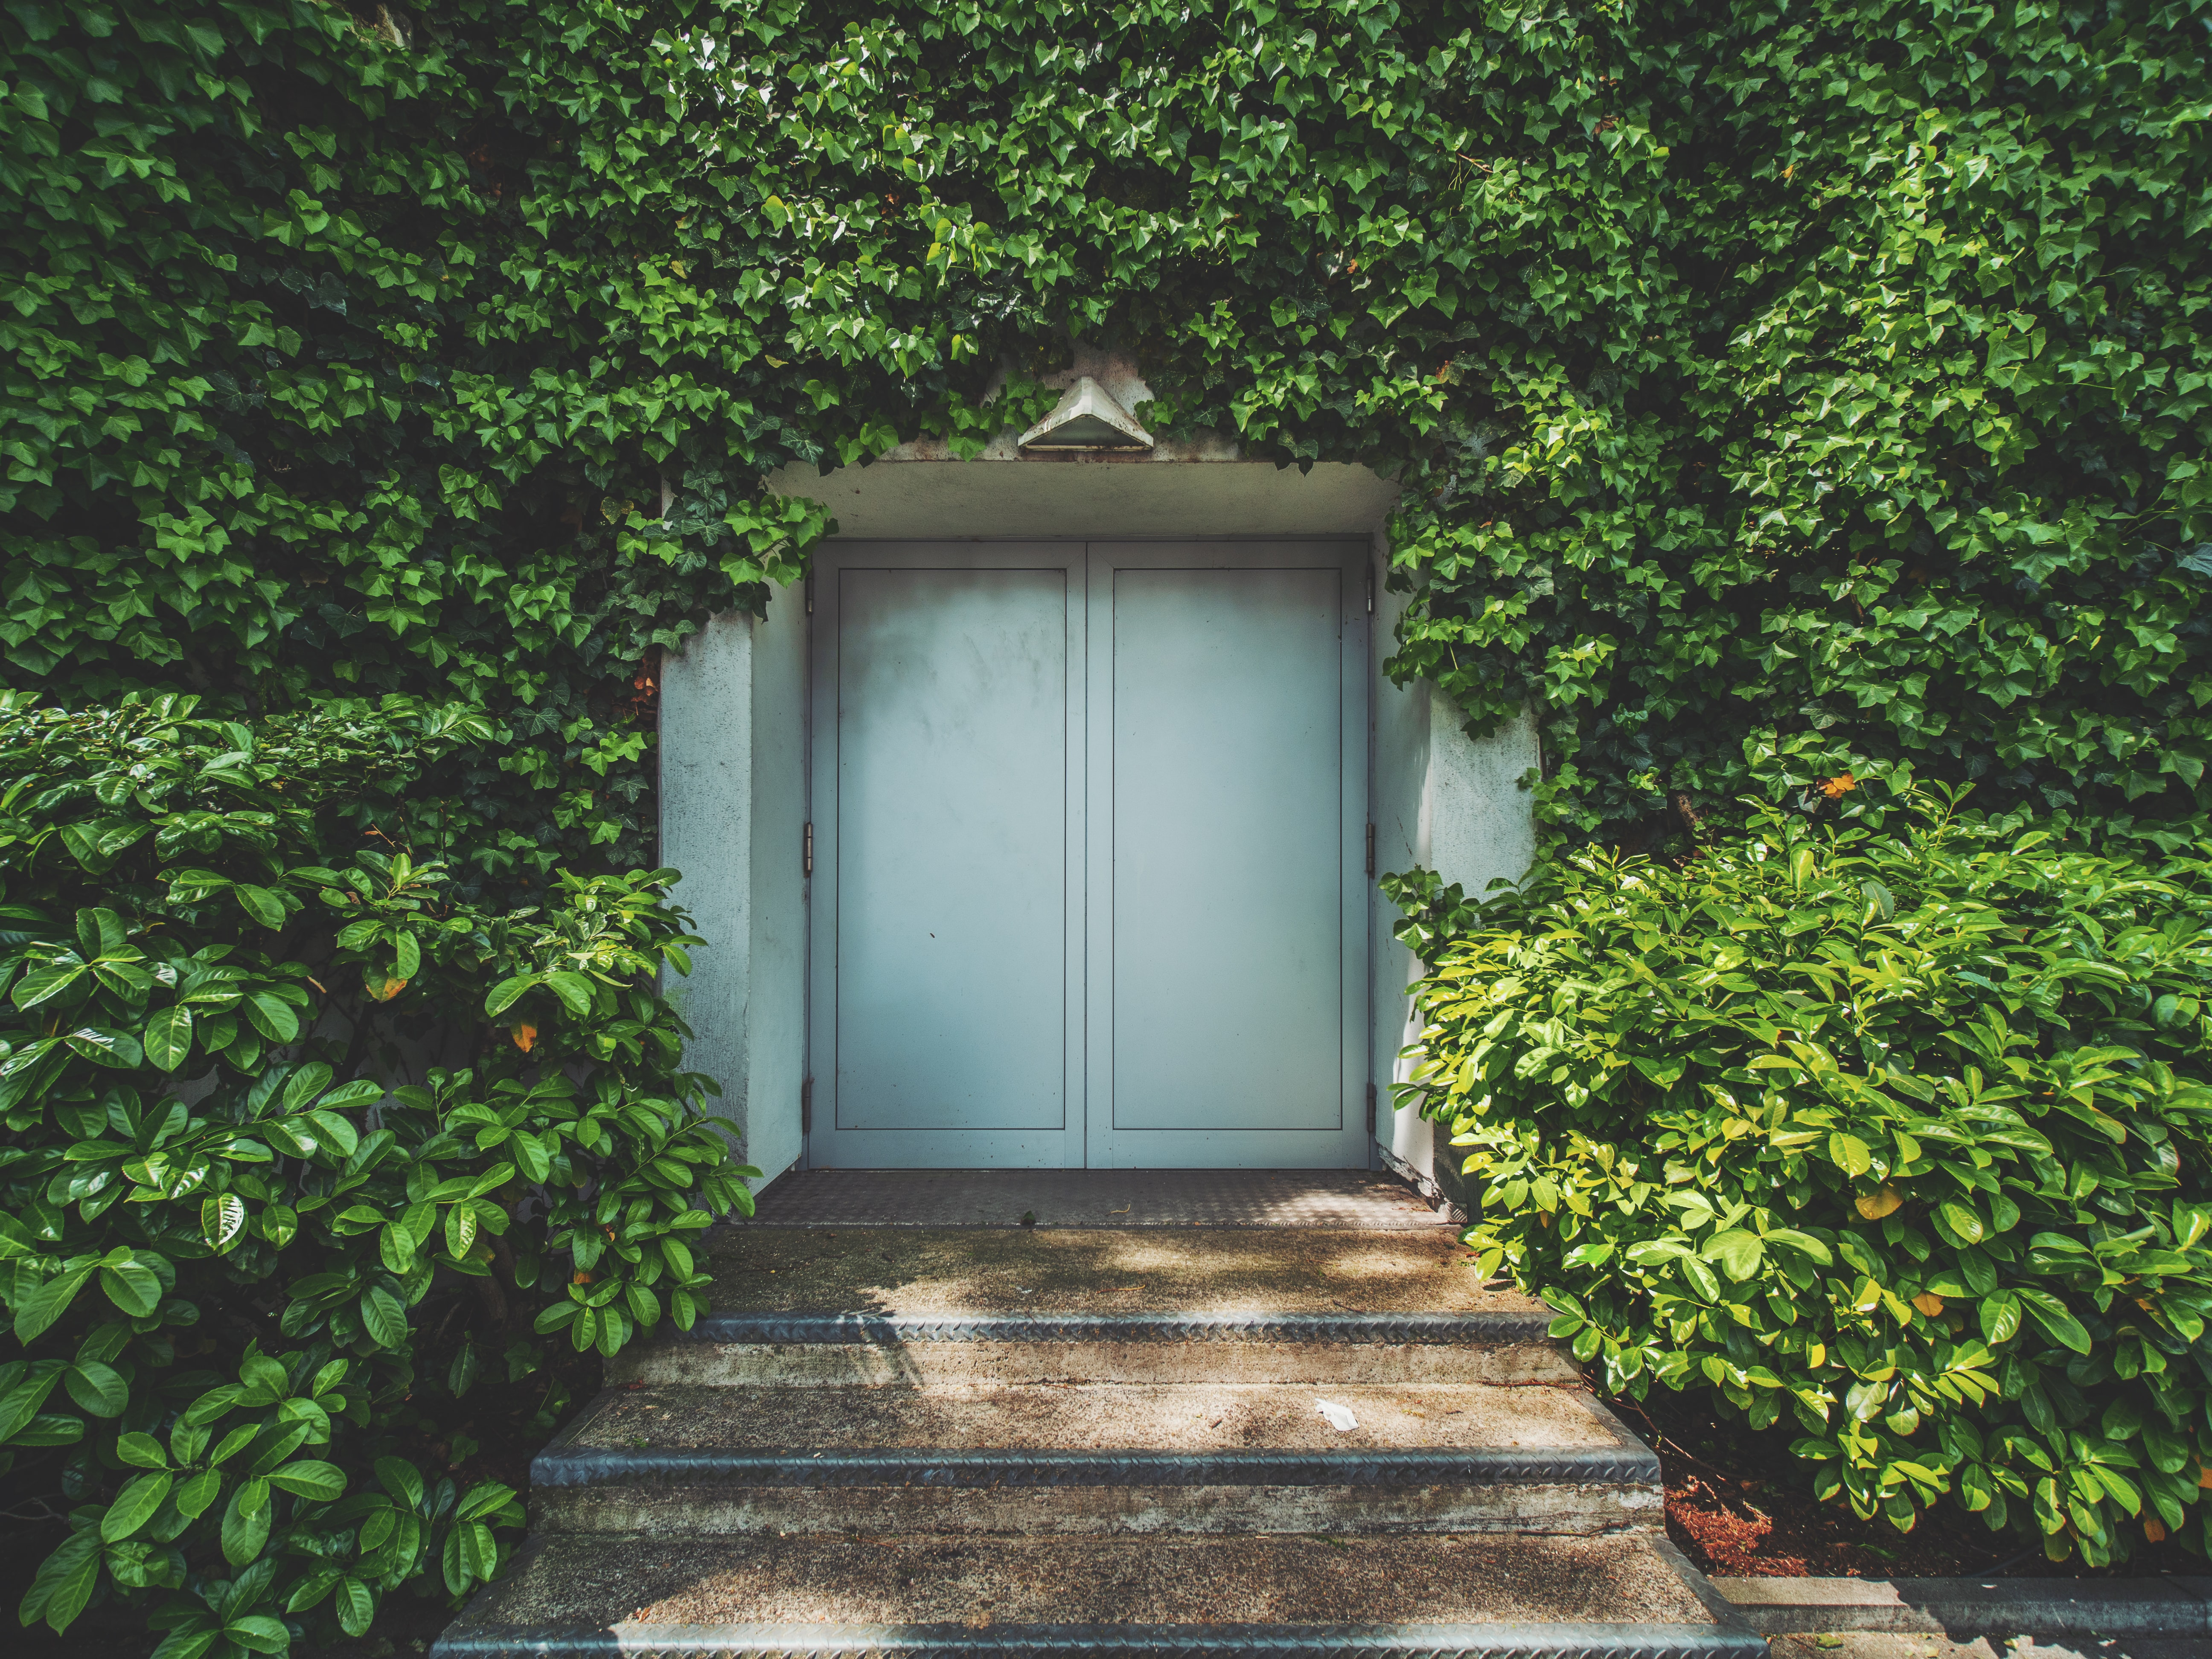 white wooden door surrounded by plants